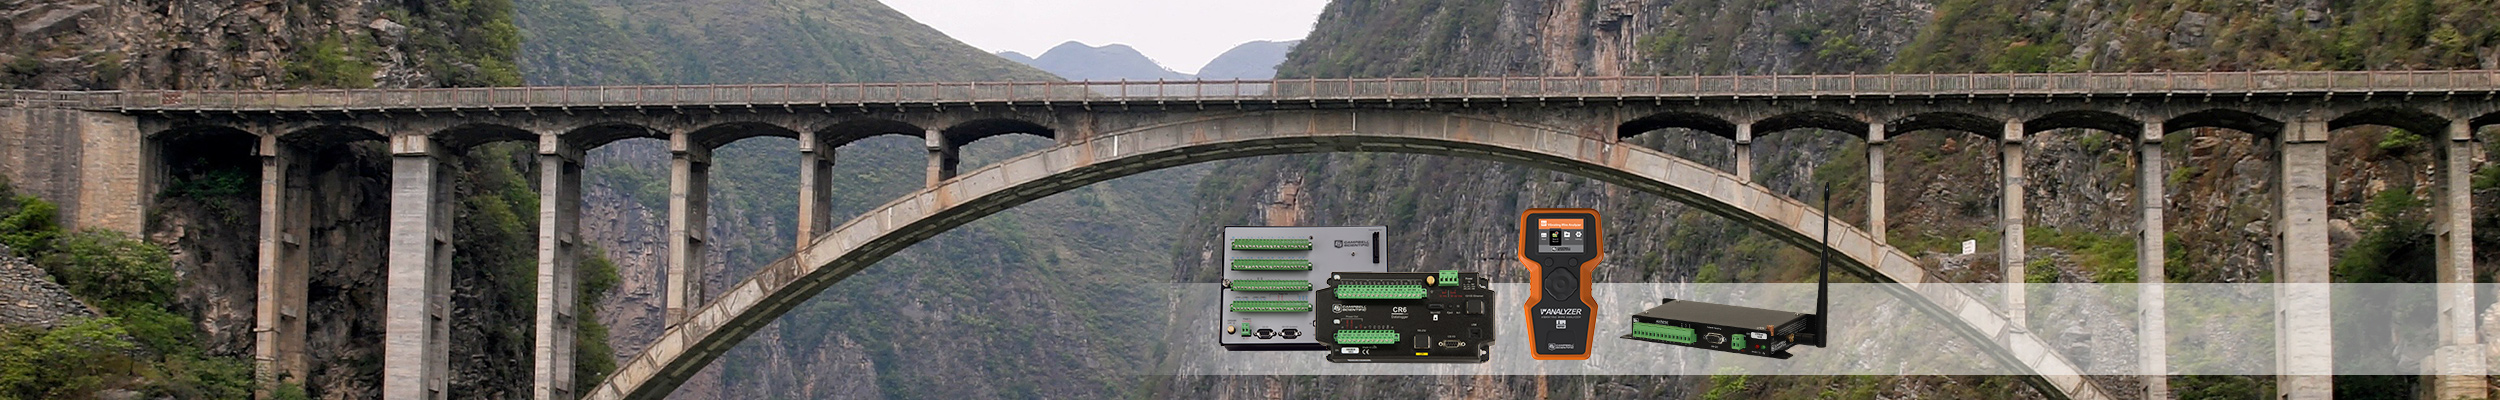 Infrastructure Test and monitoring instrumentation for structural and mechanical applications